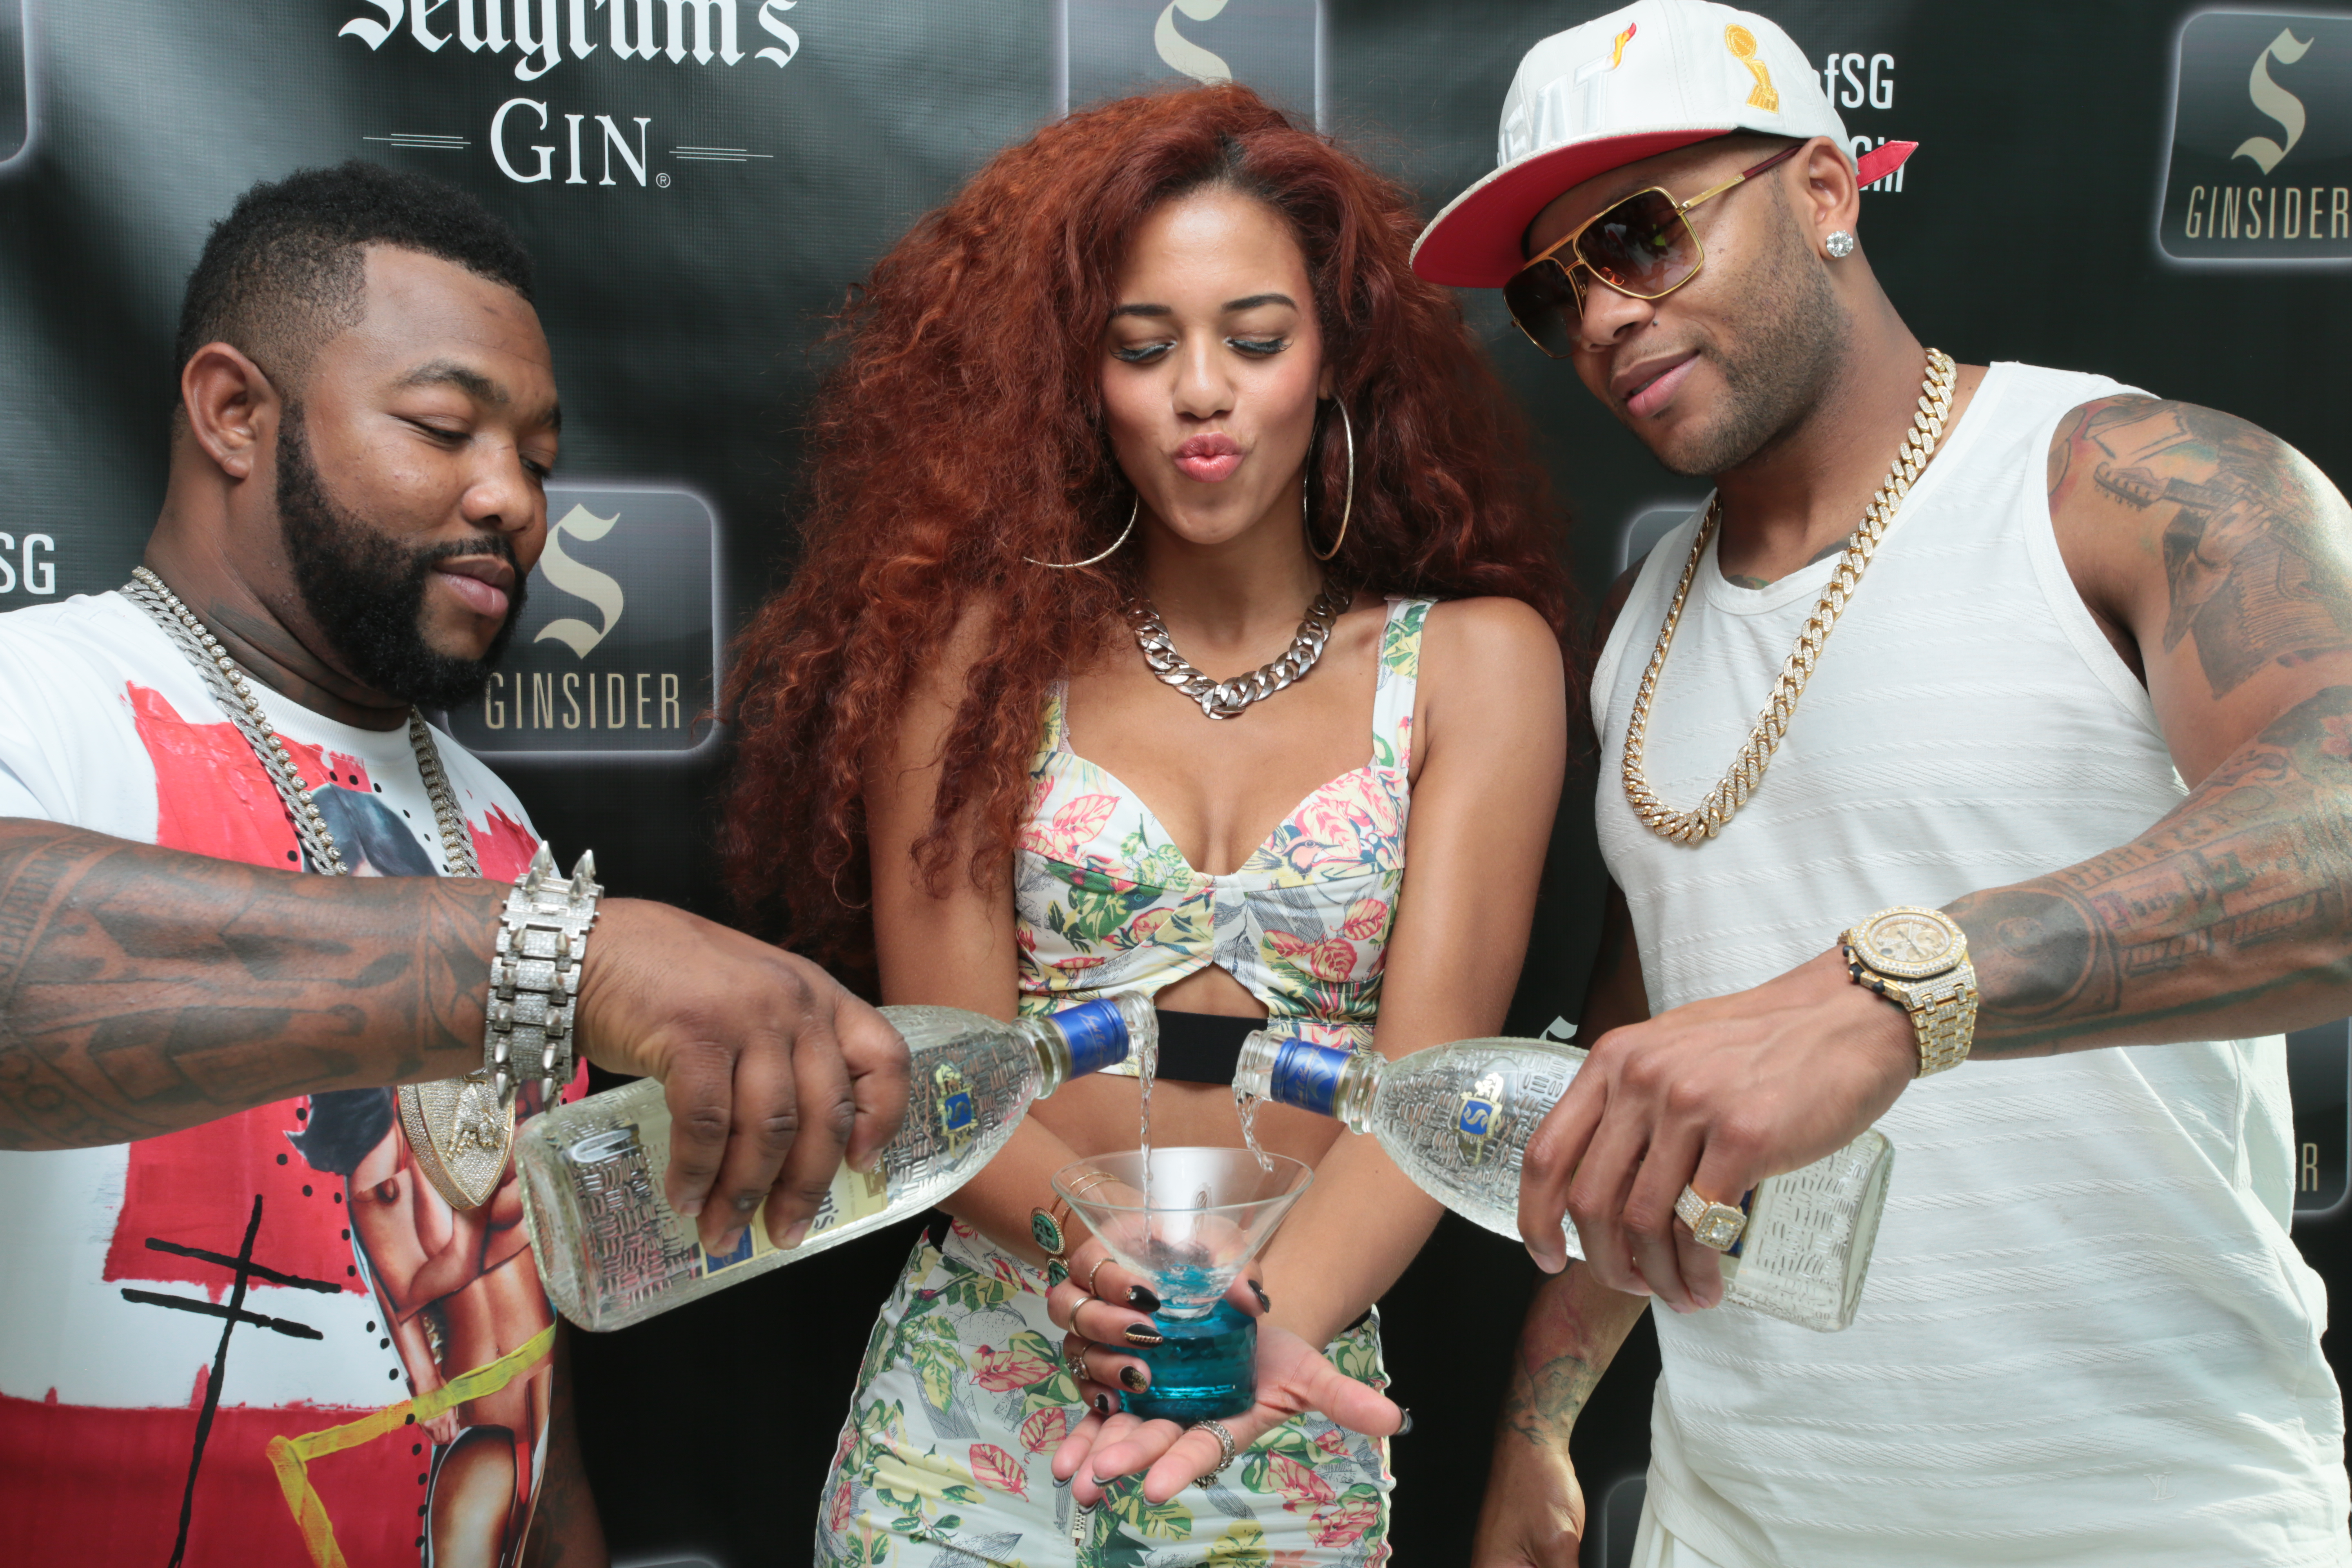 Gorilla Zoe, Natalie La Rose and Flo Rida at Flo Rida Gifting Suite - Fontainebleau - Miami